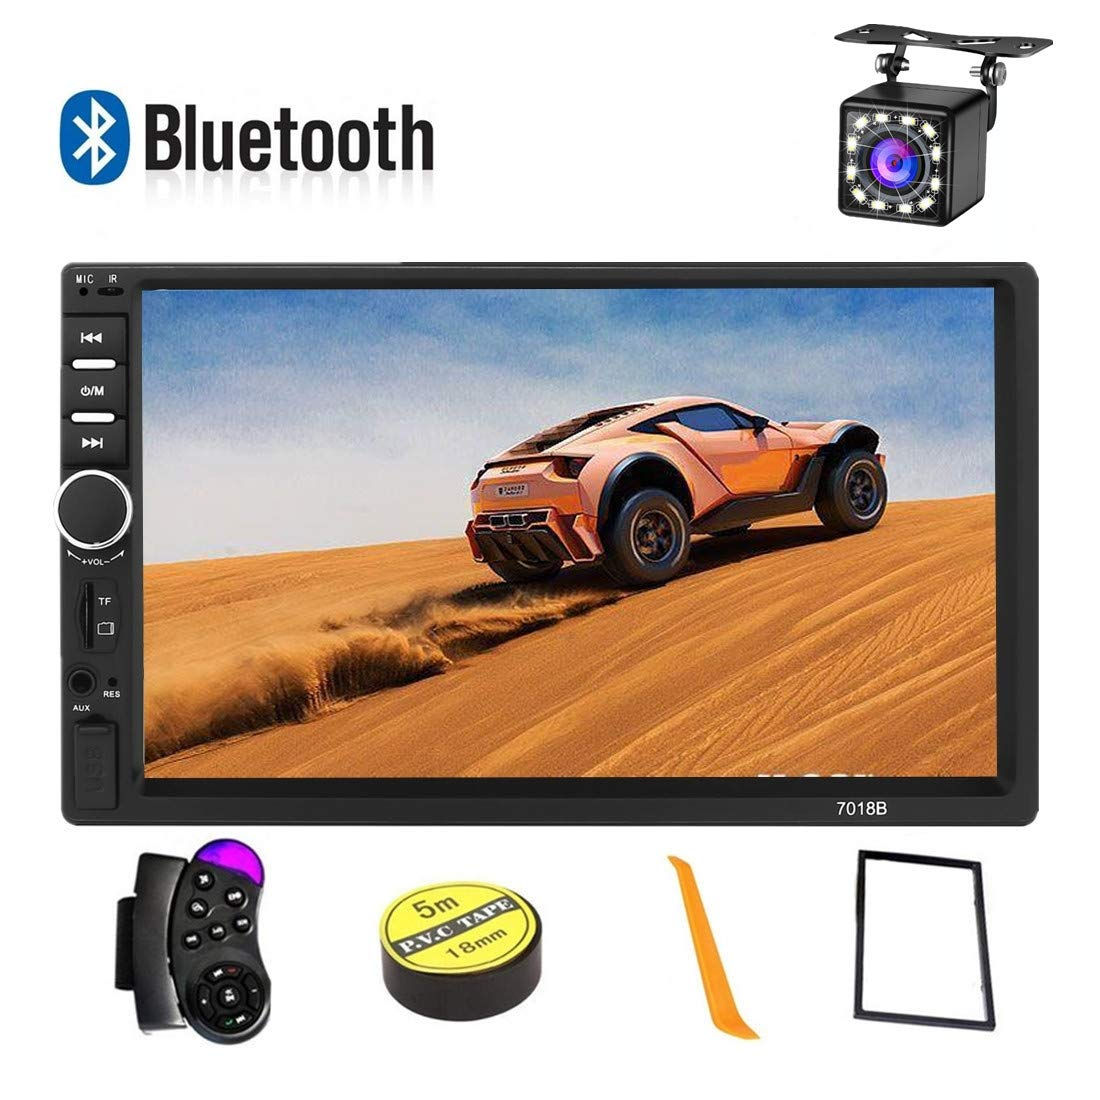 Car Stereo 2 Din,7 inch Touch Screen MP5 /MP4/MP3 Multimedia Player,Bluetooth Audio,Car Stereo Receivers,FM Radio,USB/SD/AUX Input,Mirror Link,Support Steering Wheel Remote Control,Rear View Camera by Konifo